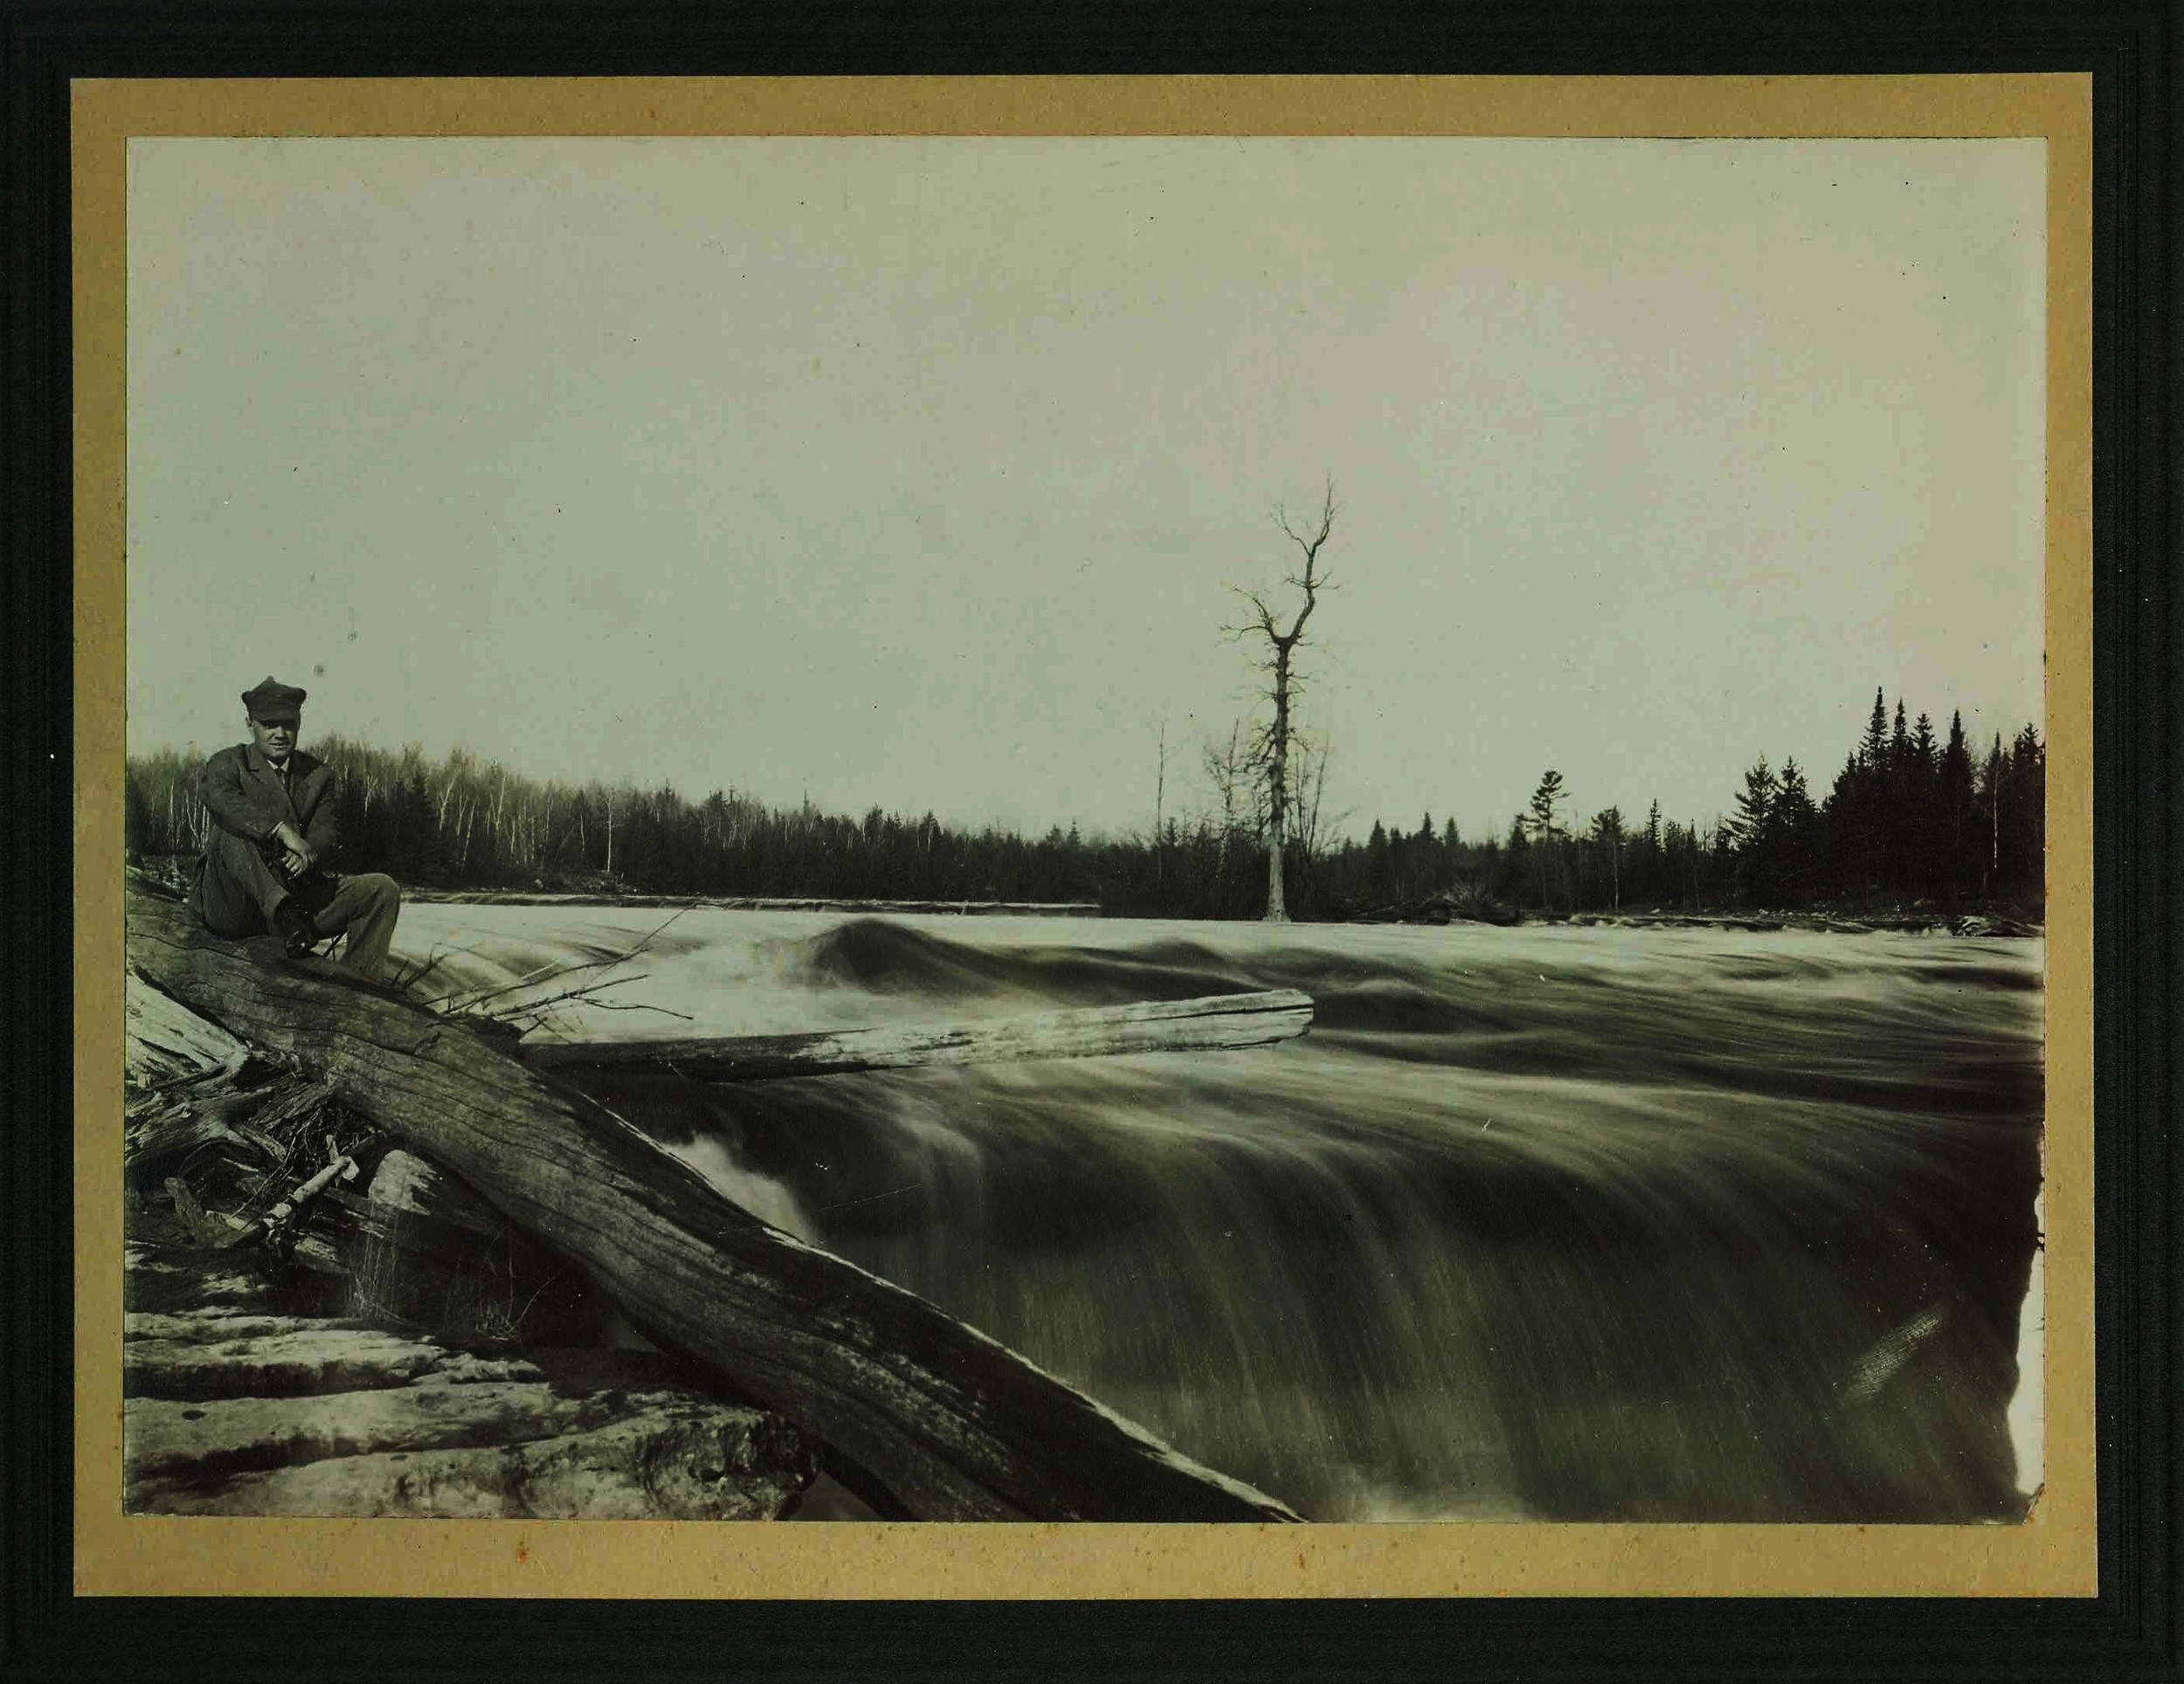 The crowe river at marmora before the installation of a dam